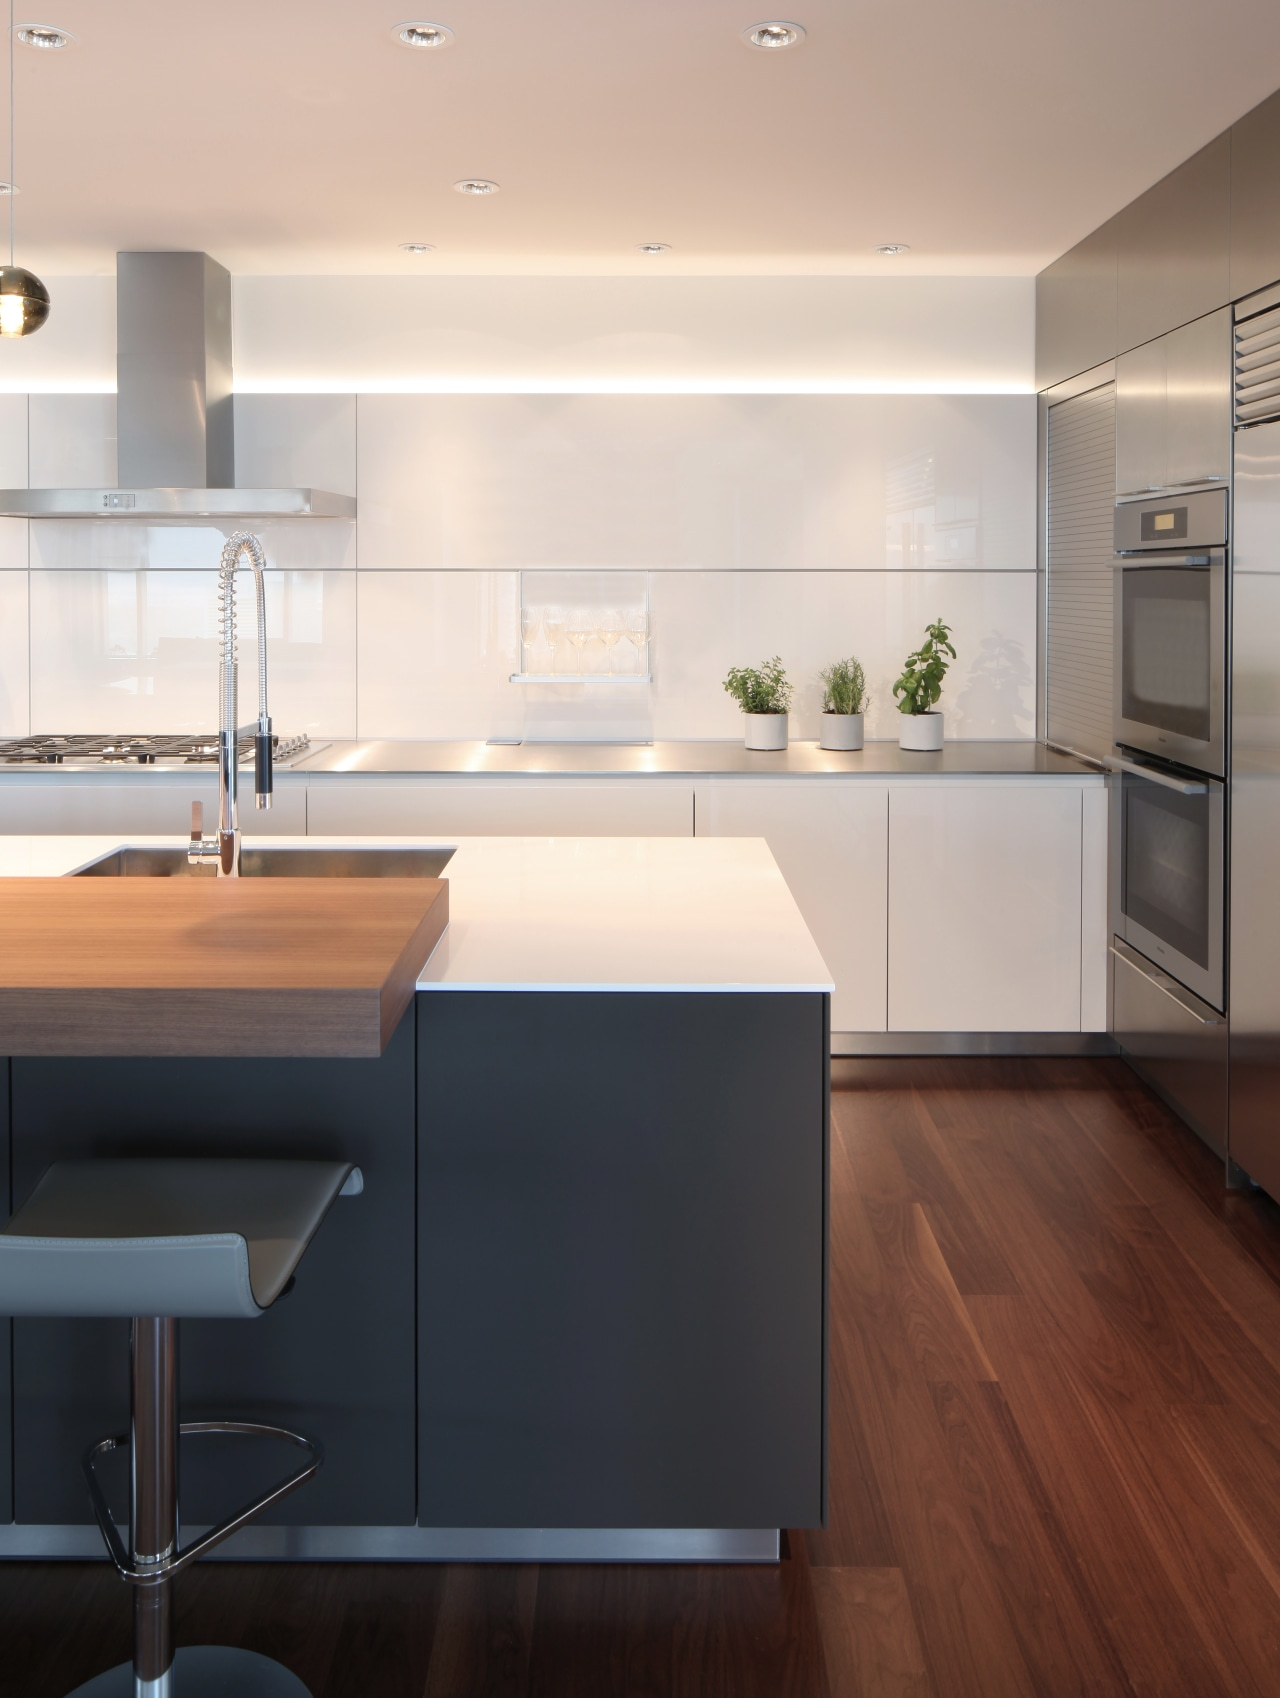 Subtle lighting can make all the difference. For architecture, cabinetry, countertop, flooring, hardwood, interior design, kitchen, laminate flooring, sink, wood flooring, white, William Landeros,  Kitchen Distributors